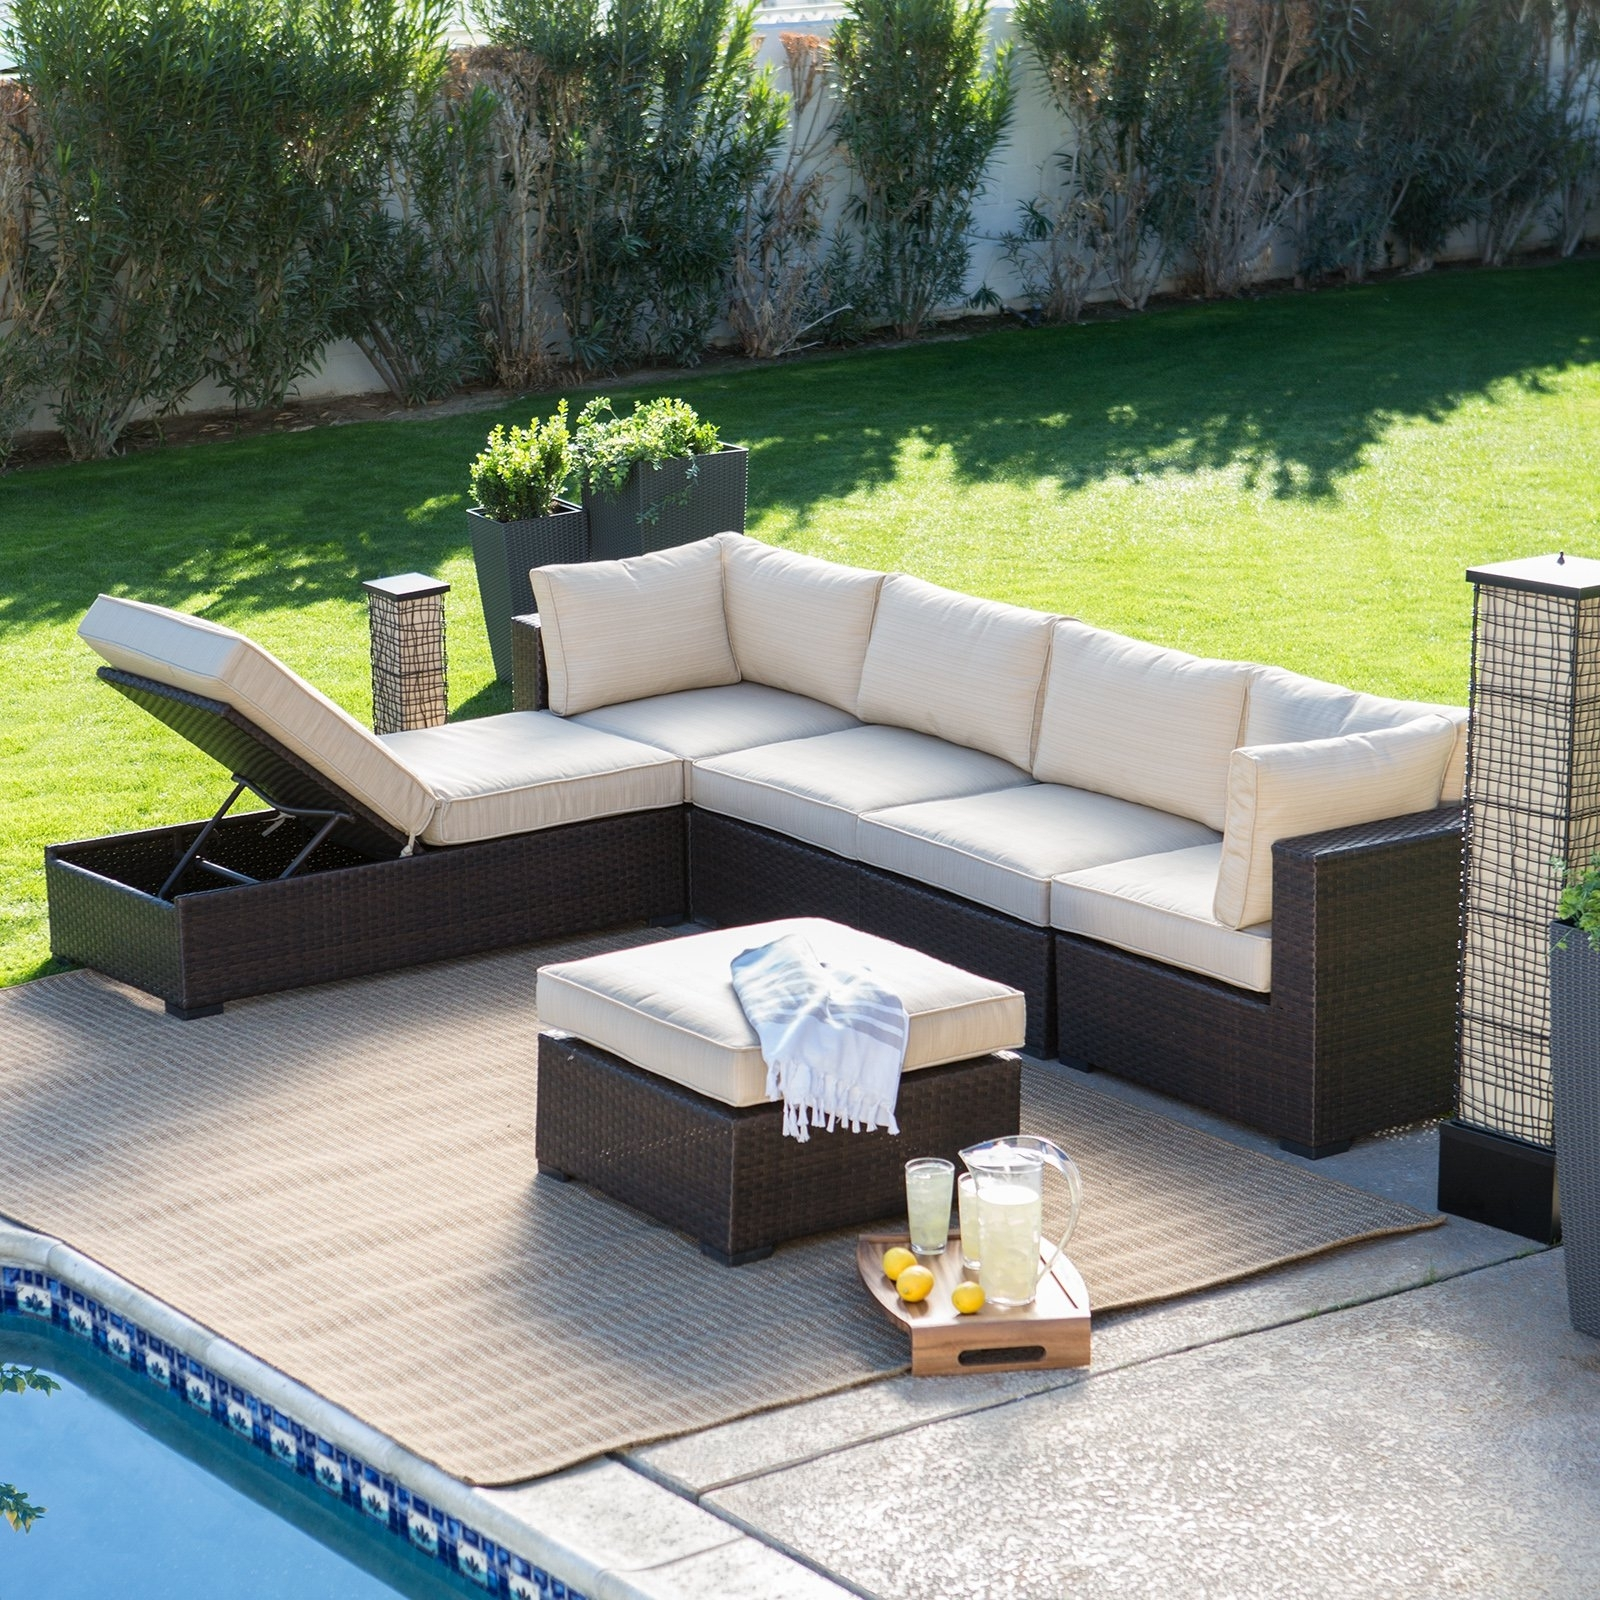 Belham Living Monticello All Weather Outdoor Wicker Sofa Sectional Regarding Commercial Outdoor Pool Furniture Good Commercial Outdoor Pool Furniture